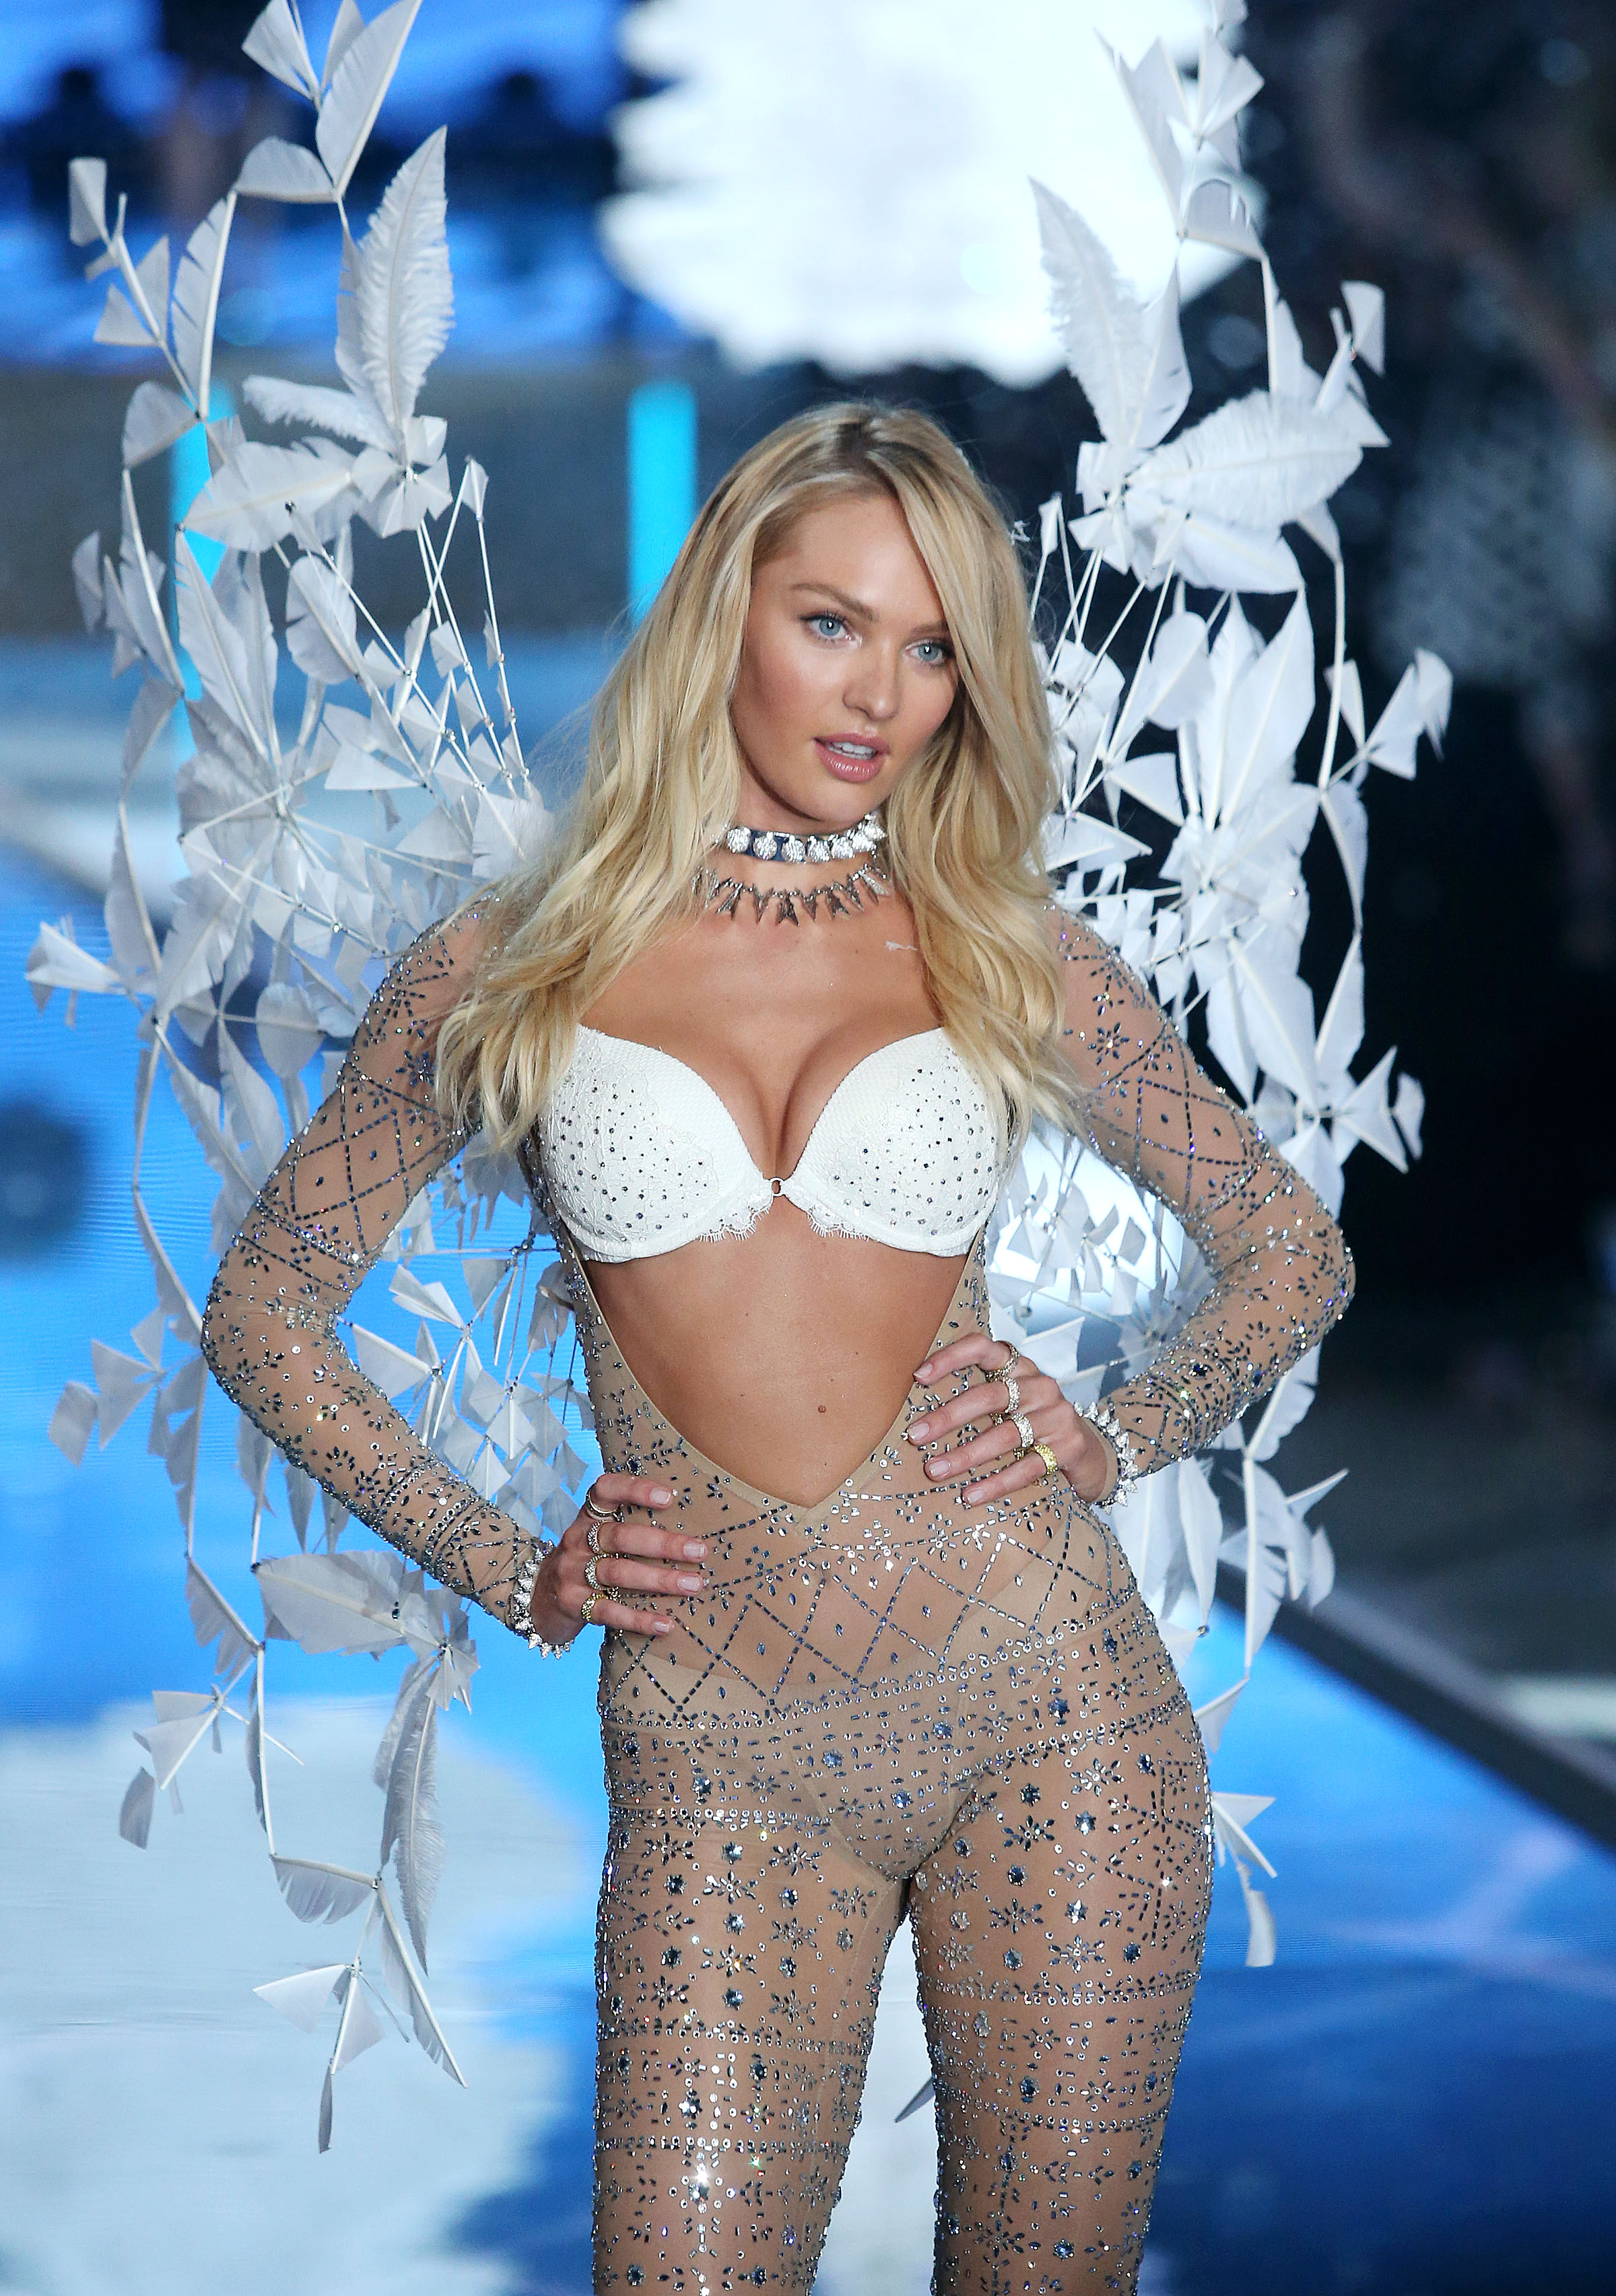 Candice Swanepoel 10 11 2015 DFSDAW 076 (Candice_Swanepoel ...